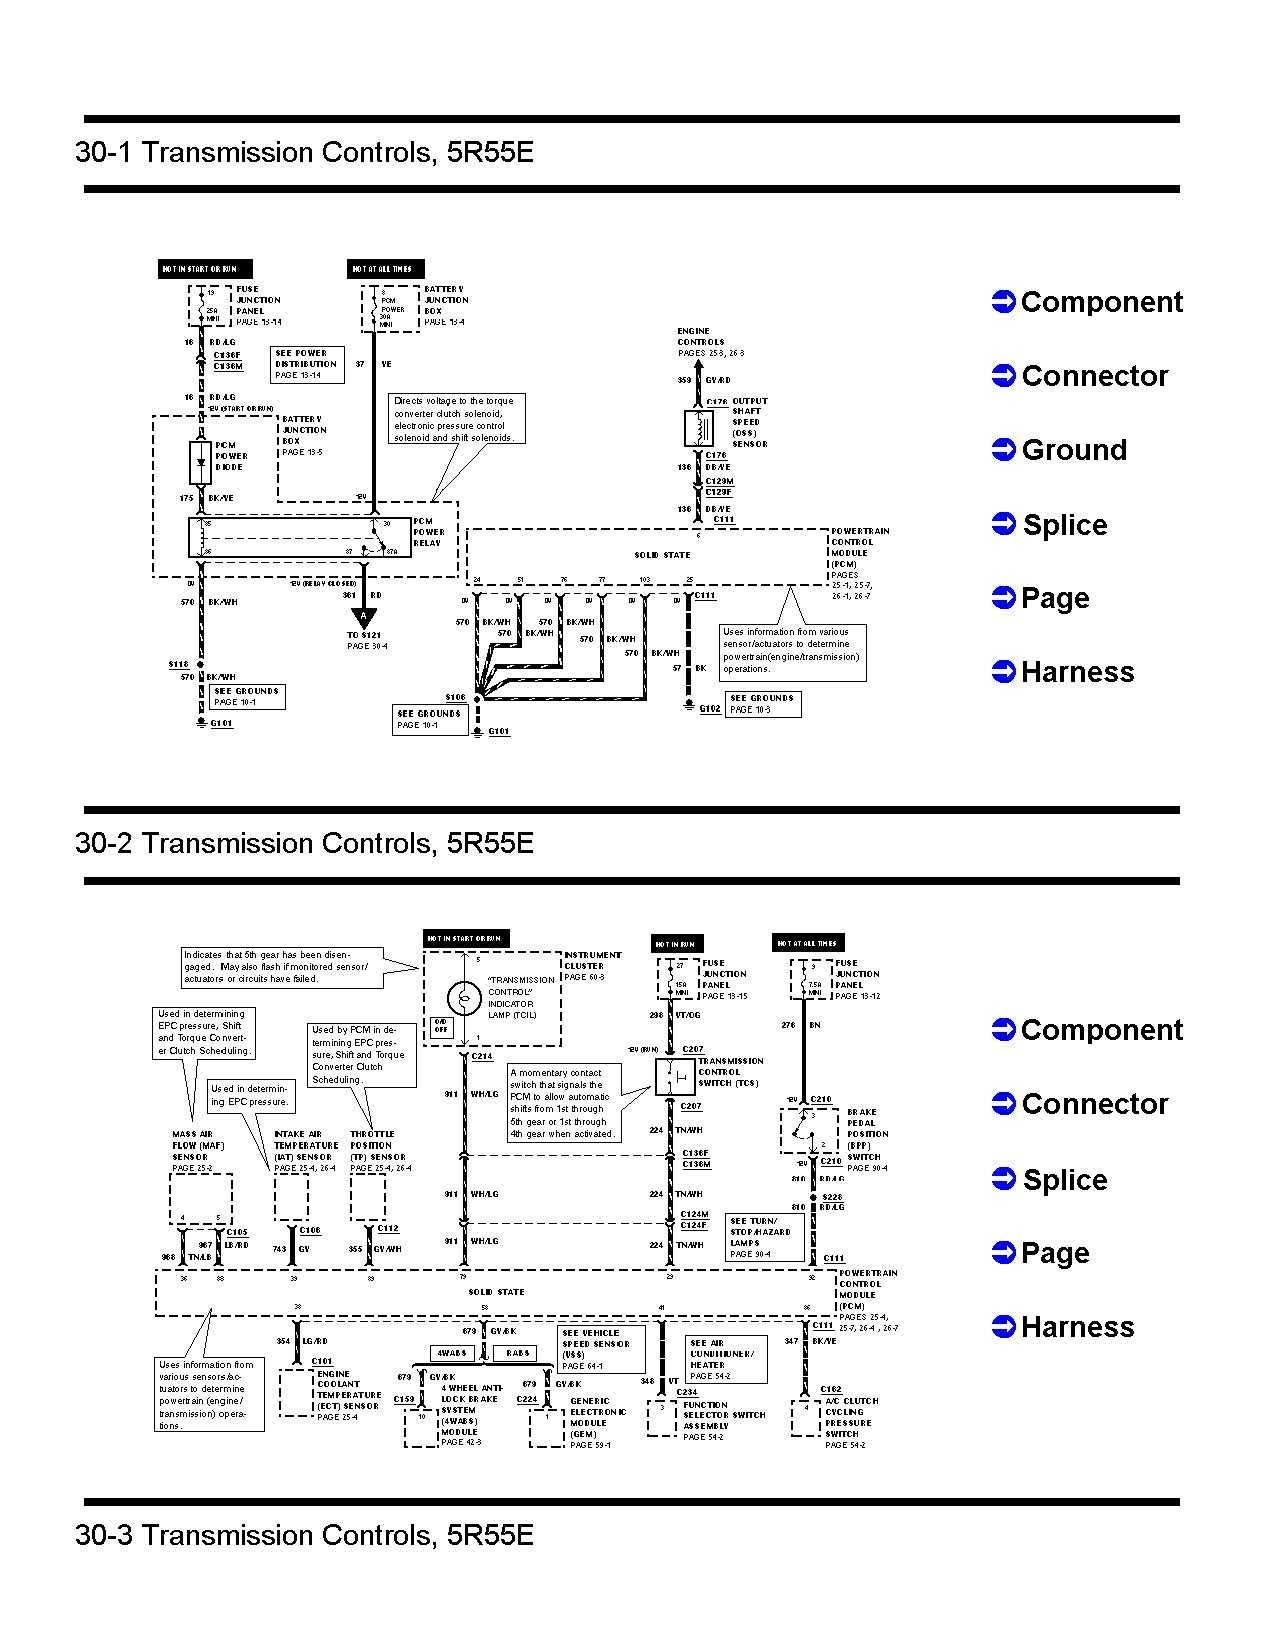 1995 ford ranger 2 3 wiring diagram simple doorbell circuit 2002 parts 5r55e